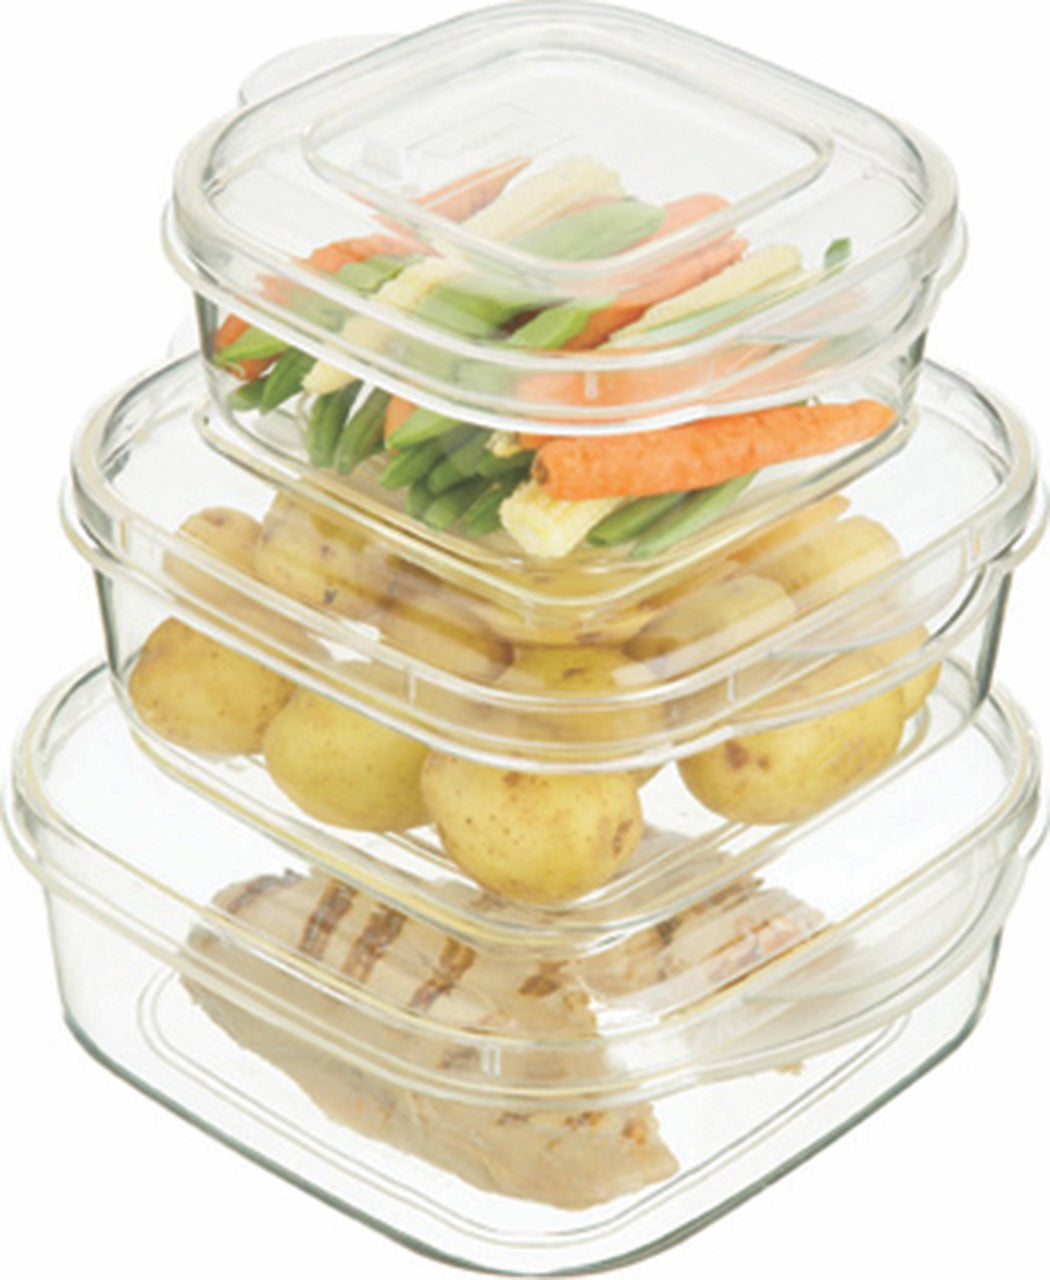 Kitchen Craft 3-Piece Microwave Casserole Container Set